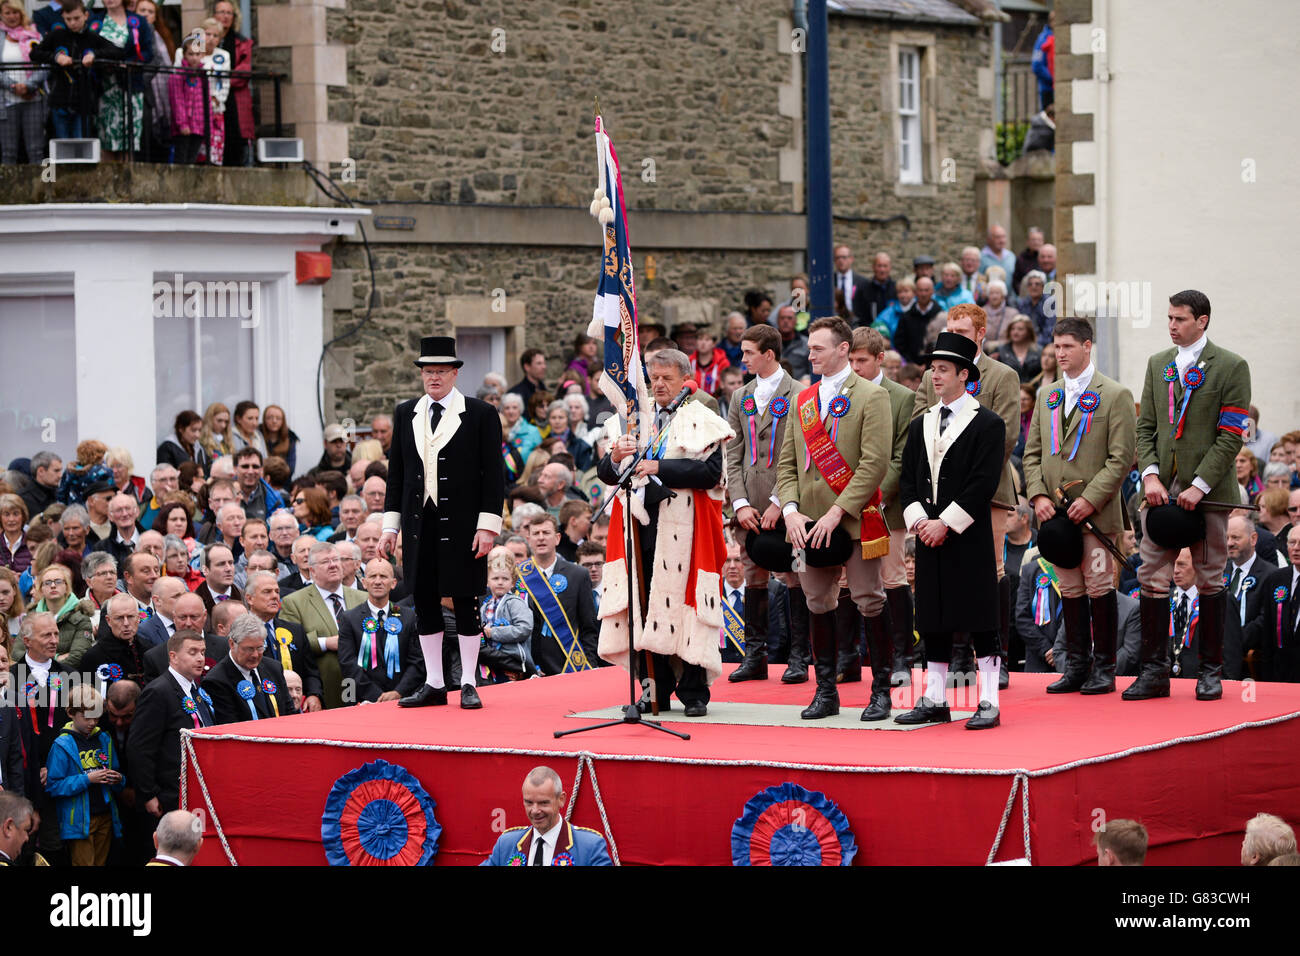 The closing ceremony Selkirk Common Riding - Stock Image